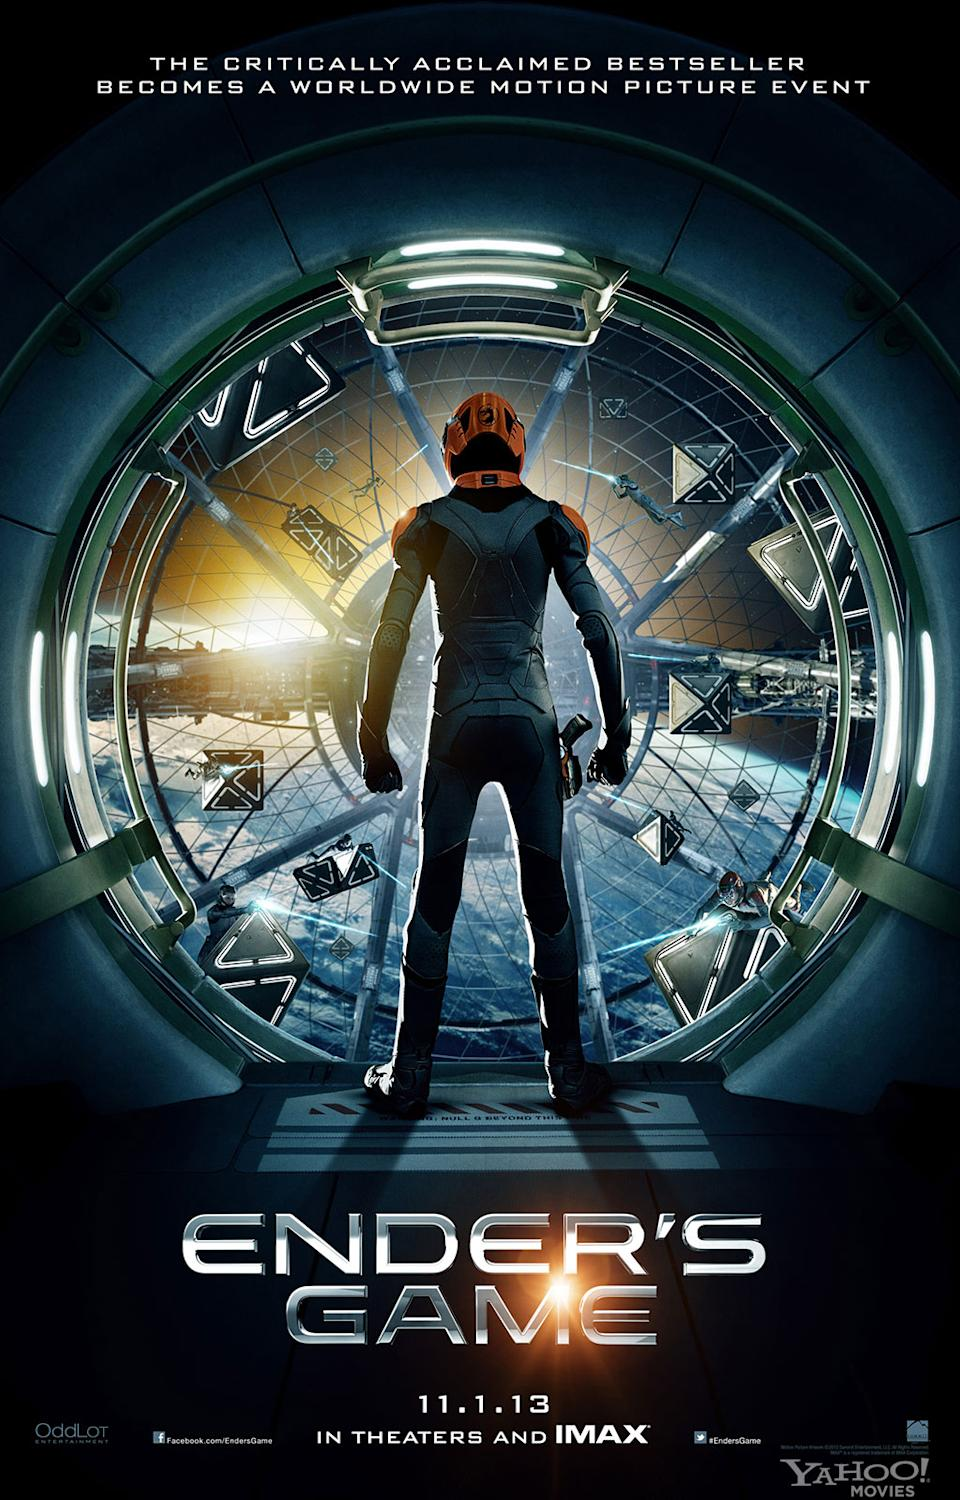 """The Battle Room is revealed in the teaser poster for Summit Entertainment's """"Ender's Game"""" - 2013<br><br> <a href=""""http://l.yimg.com/os/251/2013/03/25/endersgame-poster-watermark-jpg_154535.jpg"""" rel=""""nofollow noopener"""" target=""""_blank"""" data-ylk=""""slk:View full size >>"""" class=""""link rapid-noclick-resp"""">View full size >></a><br> <a href=""""http://movies.yahoo.com/blogs/movie-talk/ender-game-exclusive-poster-reveal-gives-first-glimpse-155338510.html"""" data-ylk=""""slk:Interview: Director Gavin Hood on Designing the Battle Room >>;outcm:mb_qualified_link;_E:mb_qualified_link;ct:story;"""" class=""""link rapid-noclick-resp yahoo-link"""">Interview: Director Gavin Hood on Designing the Battle Room >></a>"""